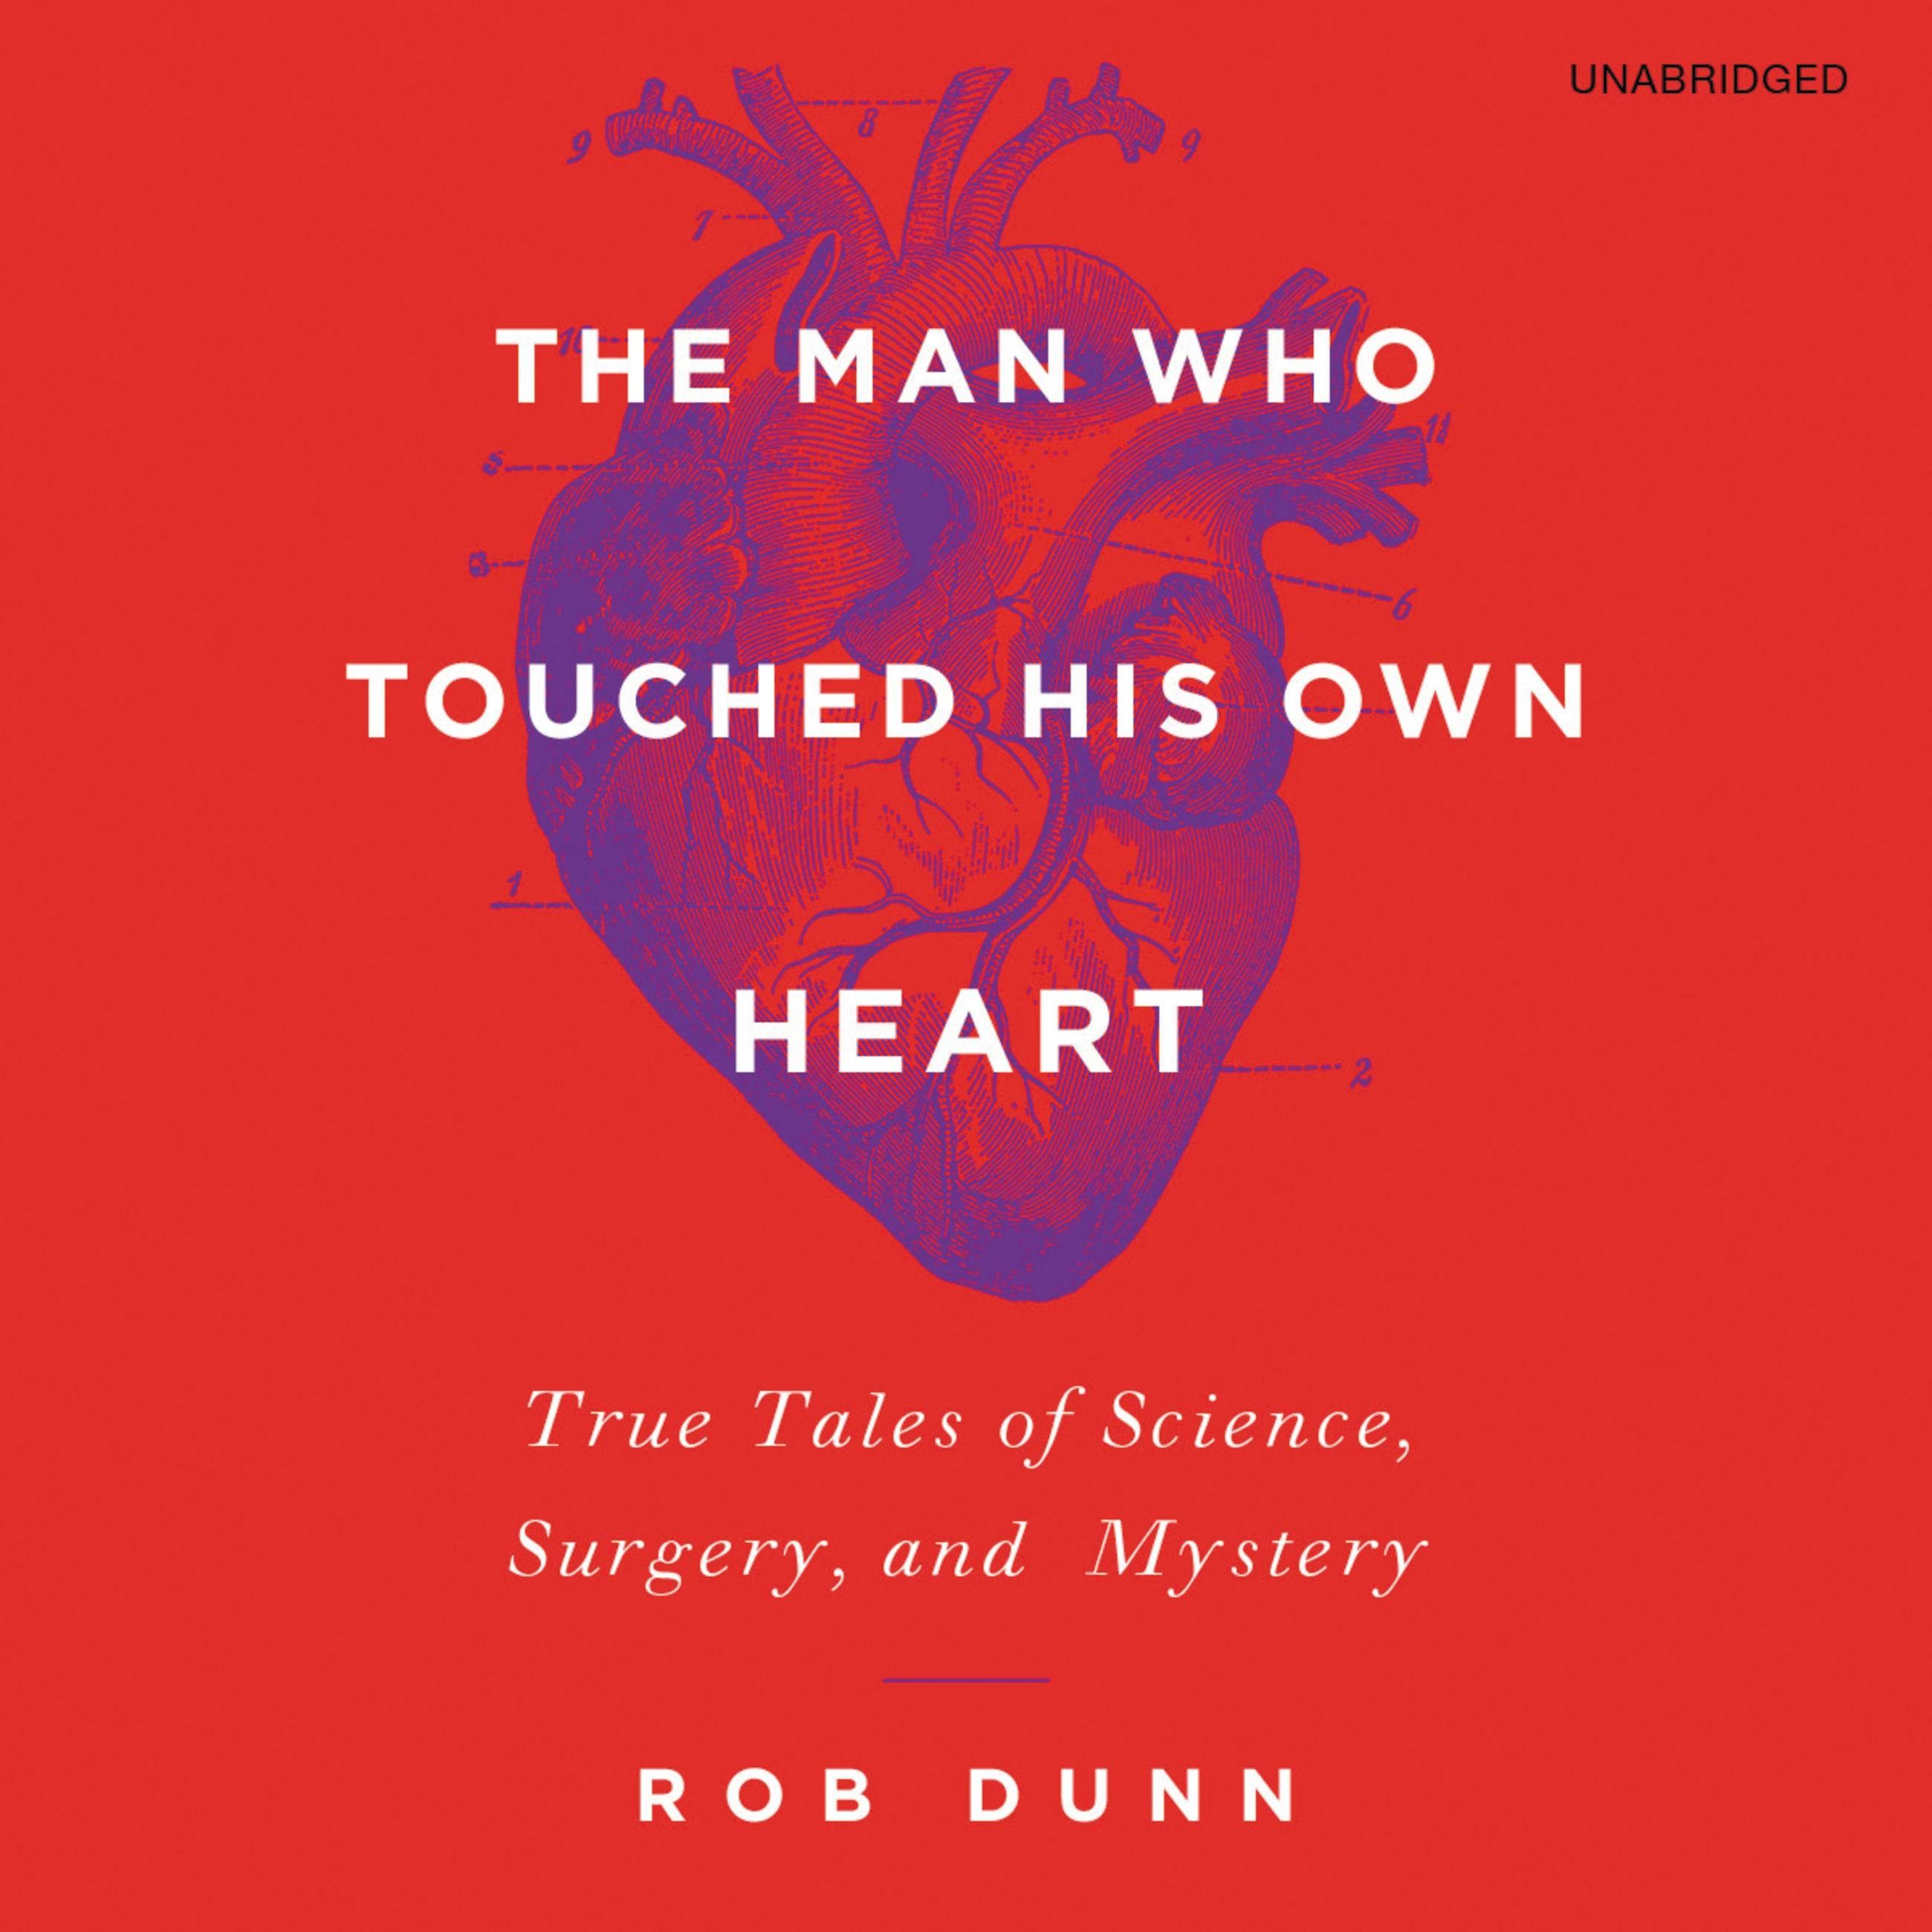 The Man Who Touched His Own Heart